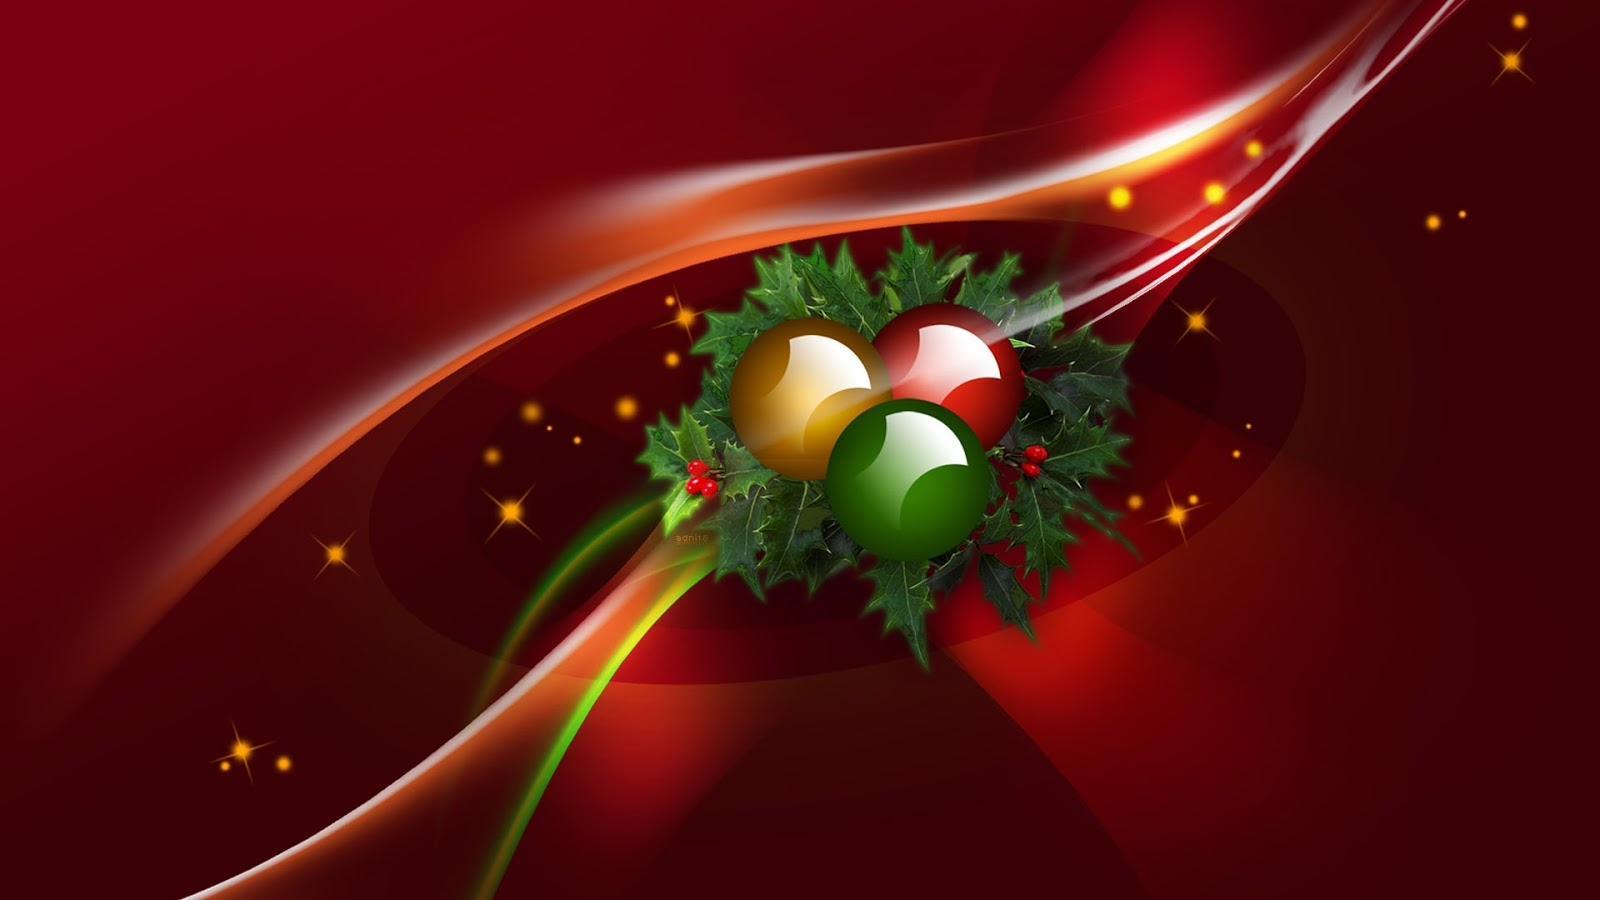 Free Download Happy Christmas Full HD 50 Wallpapers 1920x1080